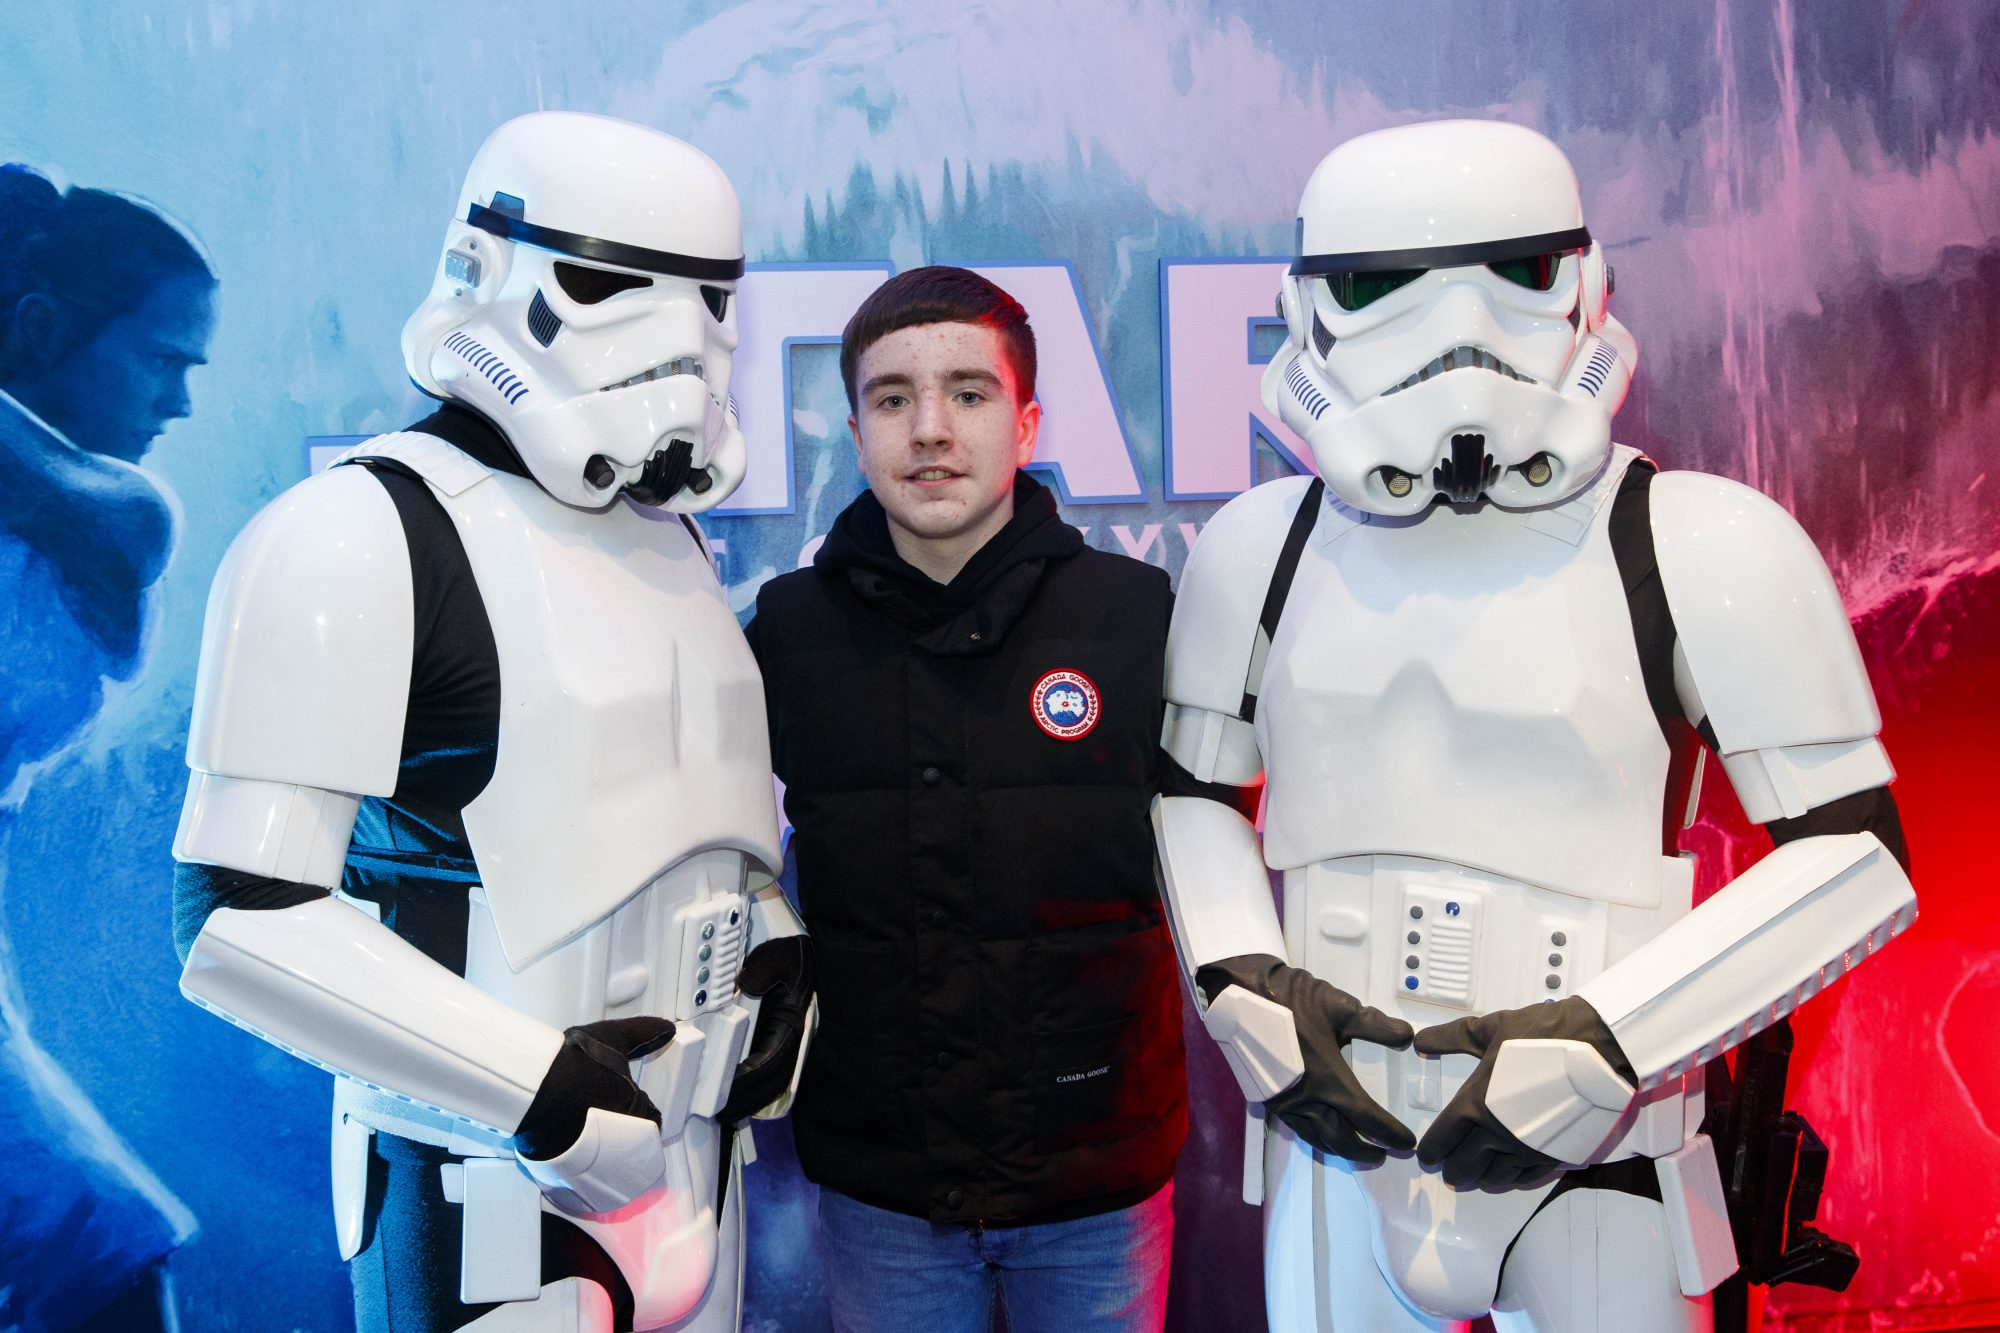 Nate Kelly pictured at the Irish premiere screening of Star Wars: The Rise of Skywalker at Cineworld, Dublin. Picture: Andres Poveda